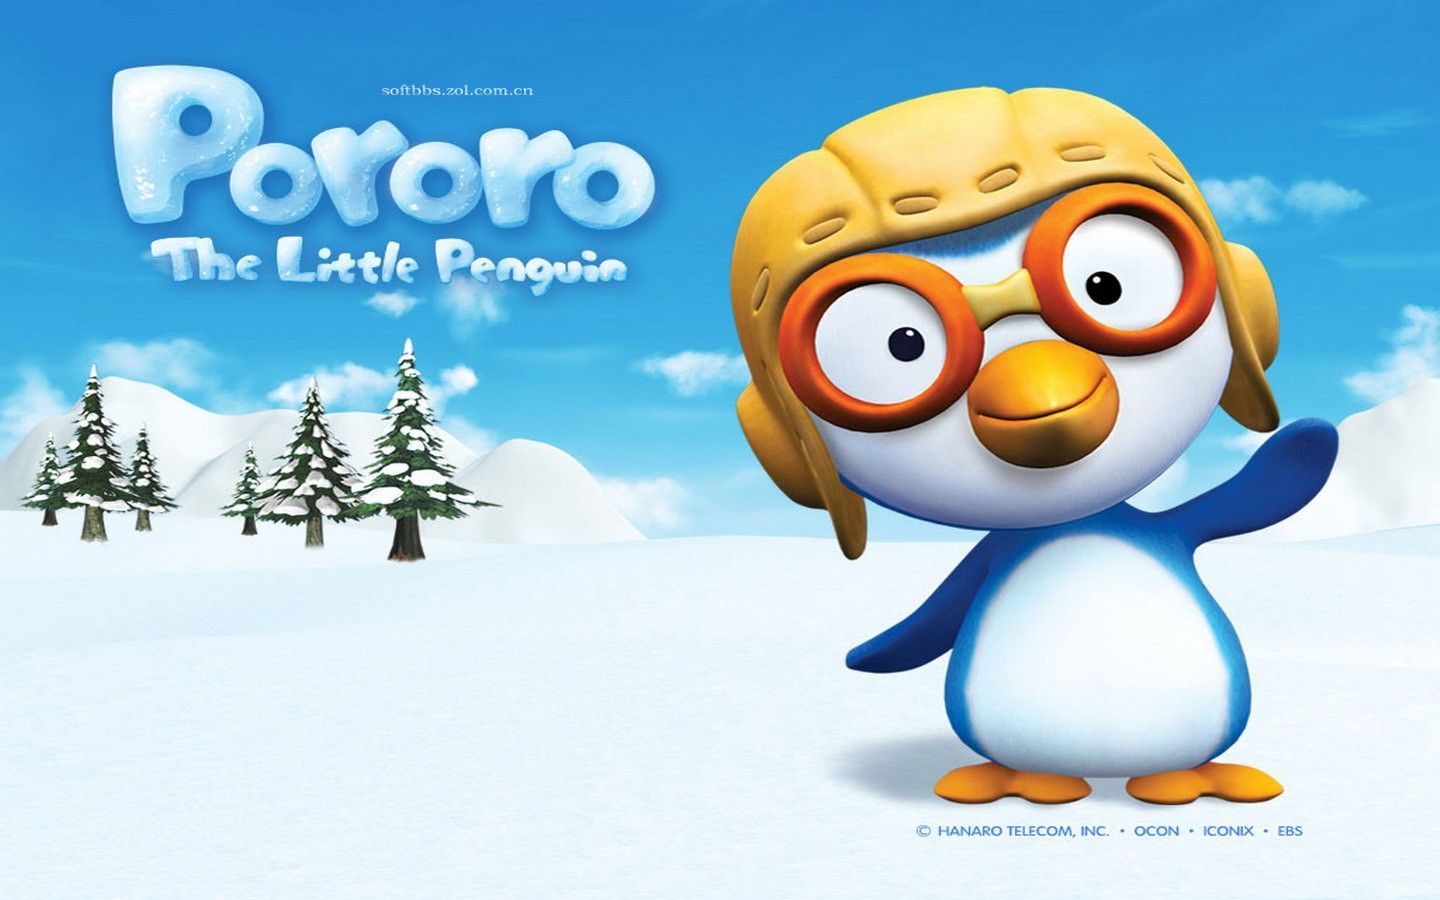 Cartoon pororo wallpaper image wallpaper collections pororo cartoon wallpapers 4 1440x900 wallpaper download image source from this altavistaventures Image collections